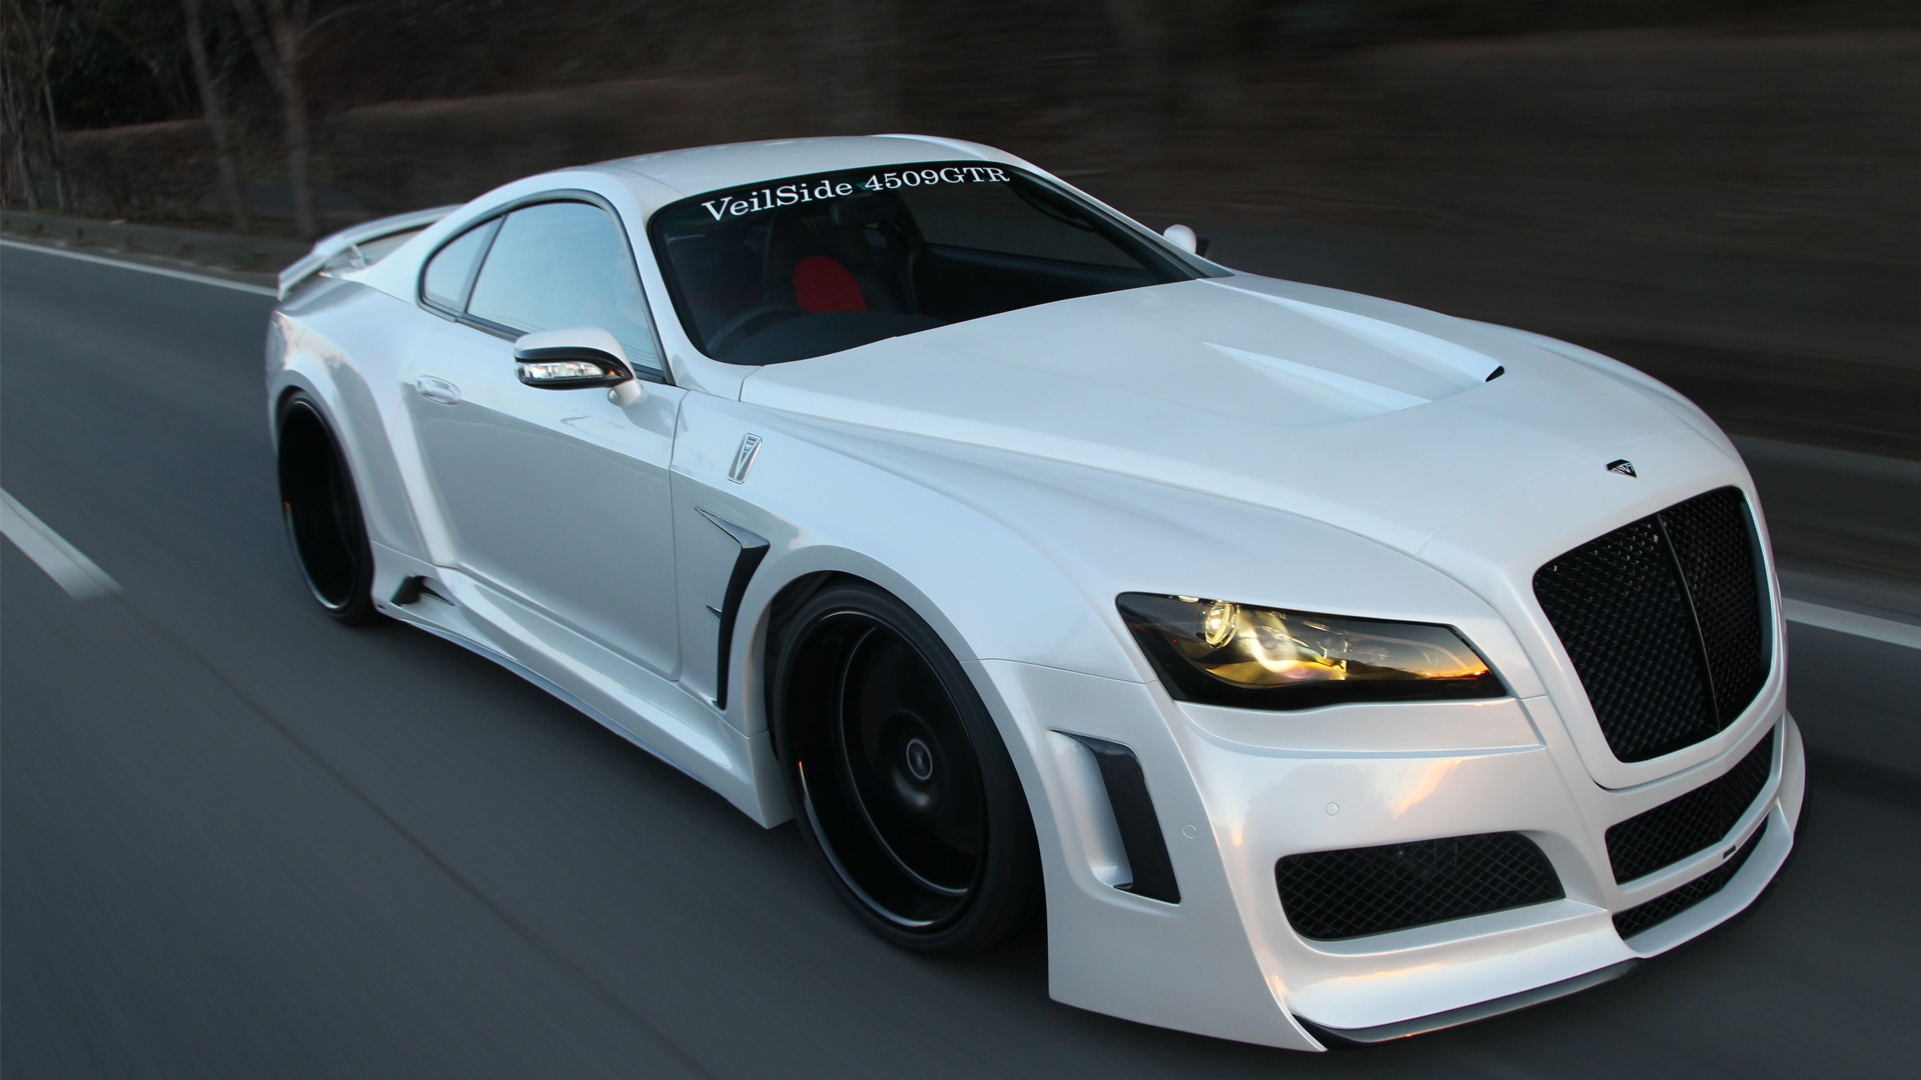 Chevrolet Camaro Sport Ss Hd Wallpapers Hd Car Wallpapers Toyota Supra Turned Into Supercar by VeilSide - autoevolution